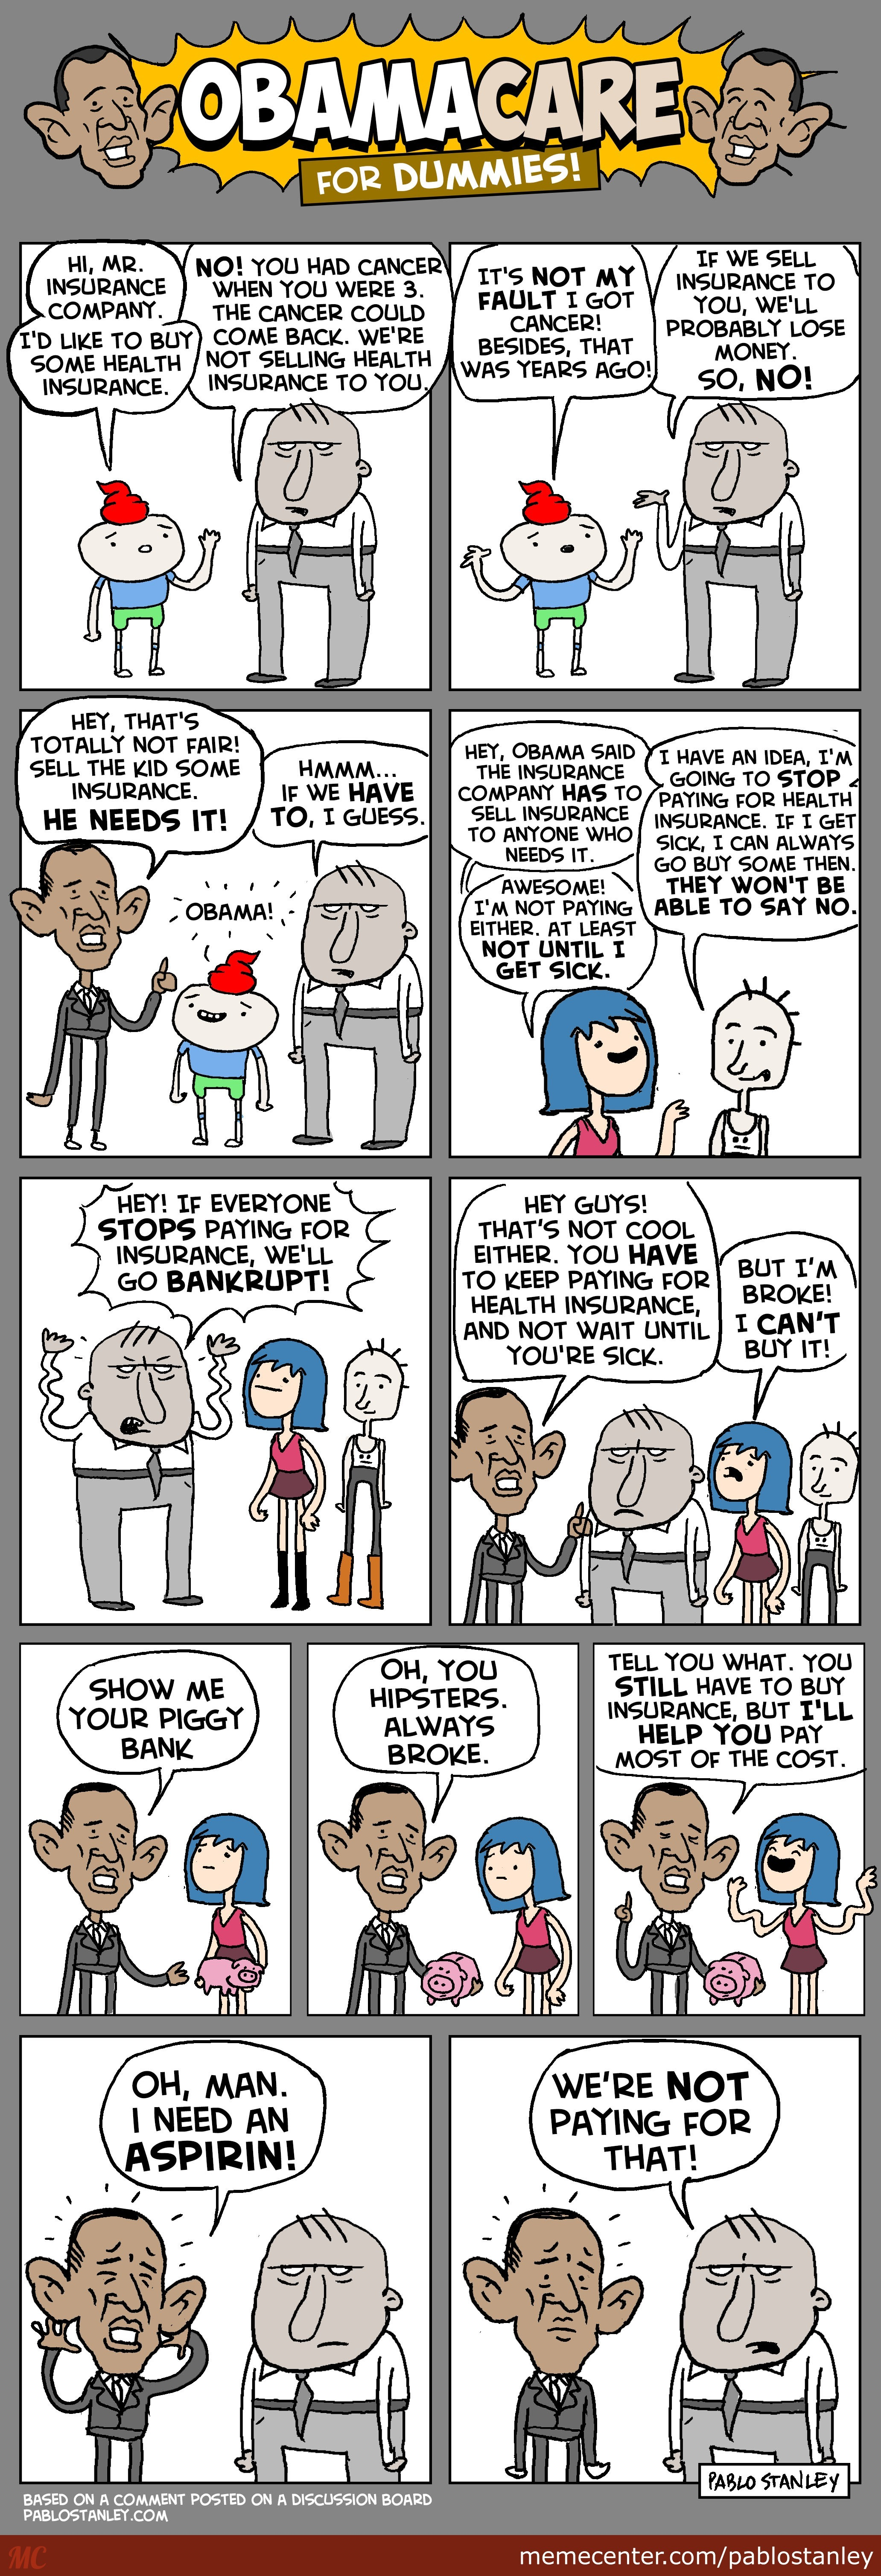 Obamacare For Dummies